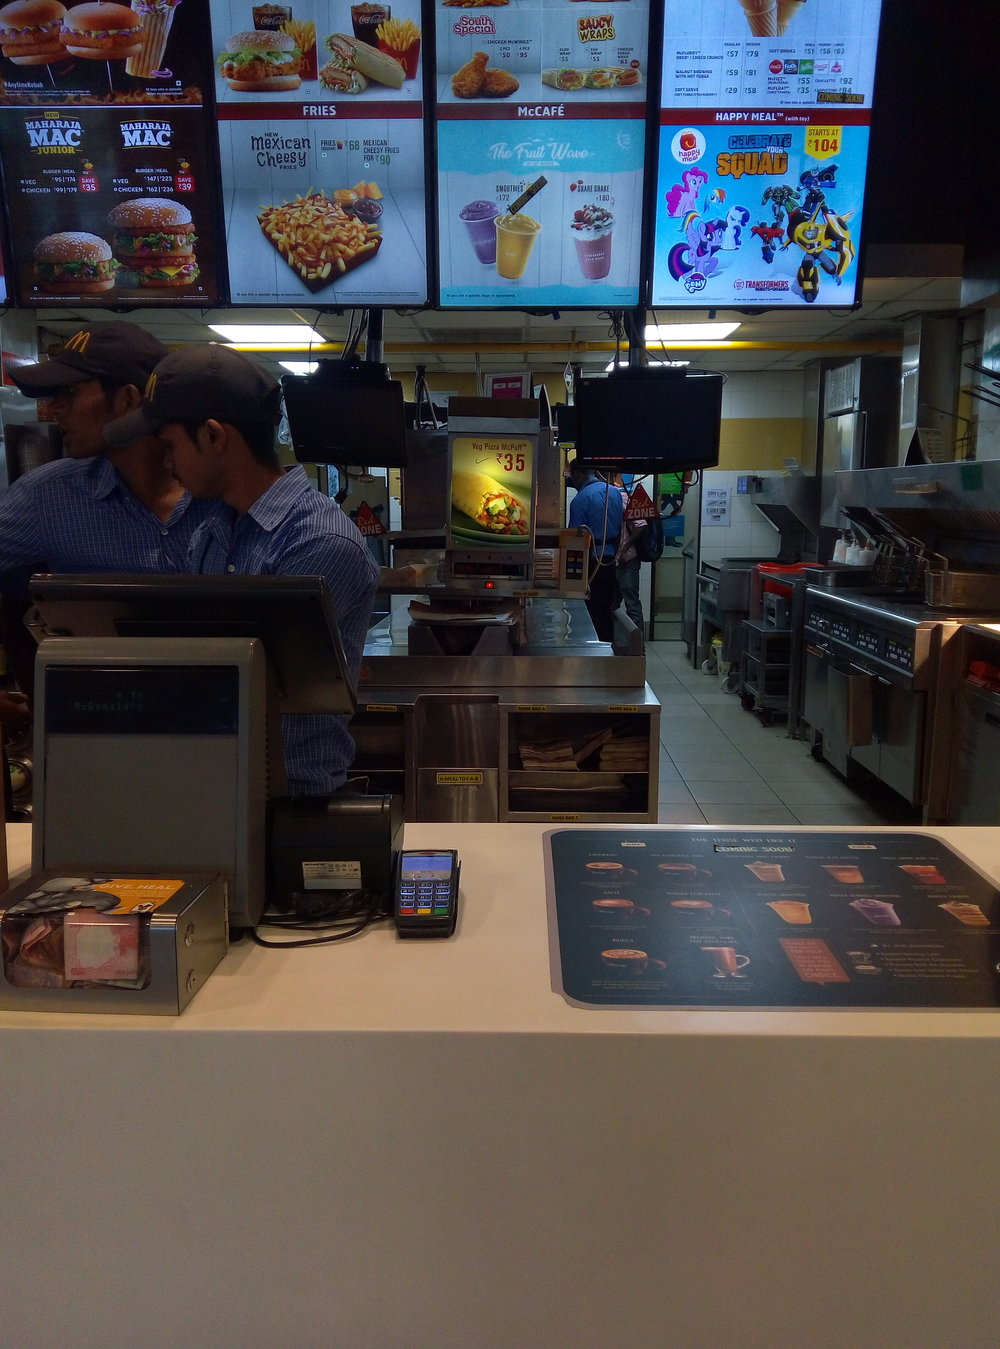 McDonalds Karnataka | Customer Service | Big Data | PritishSocial | Travel and Food